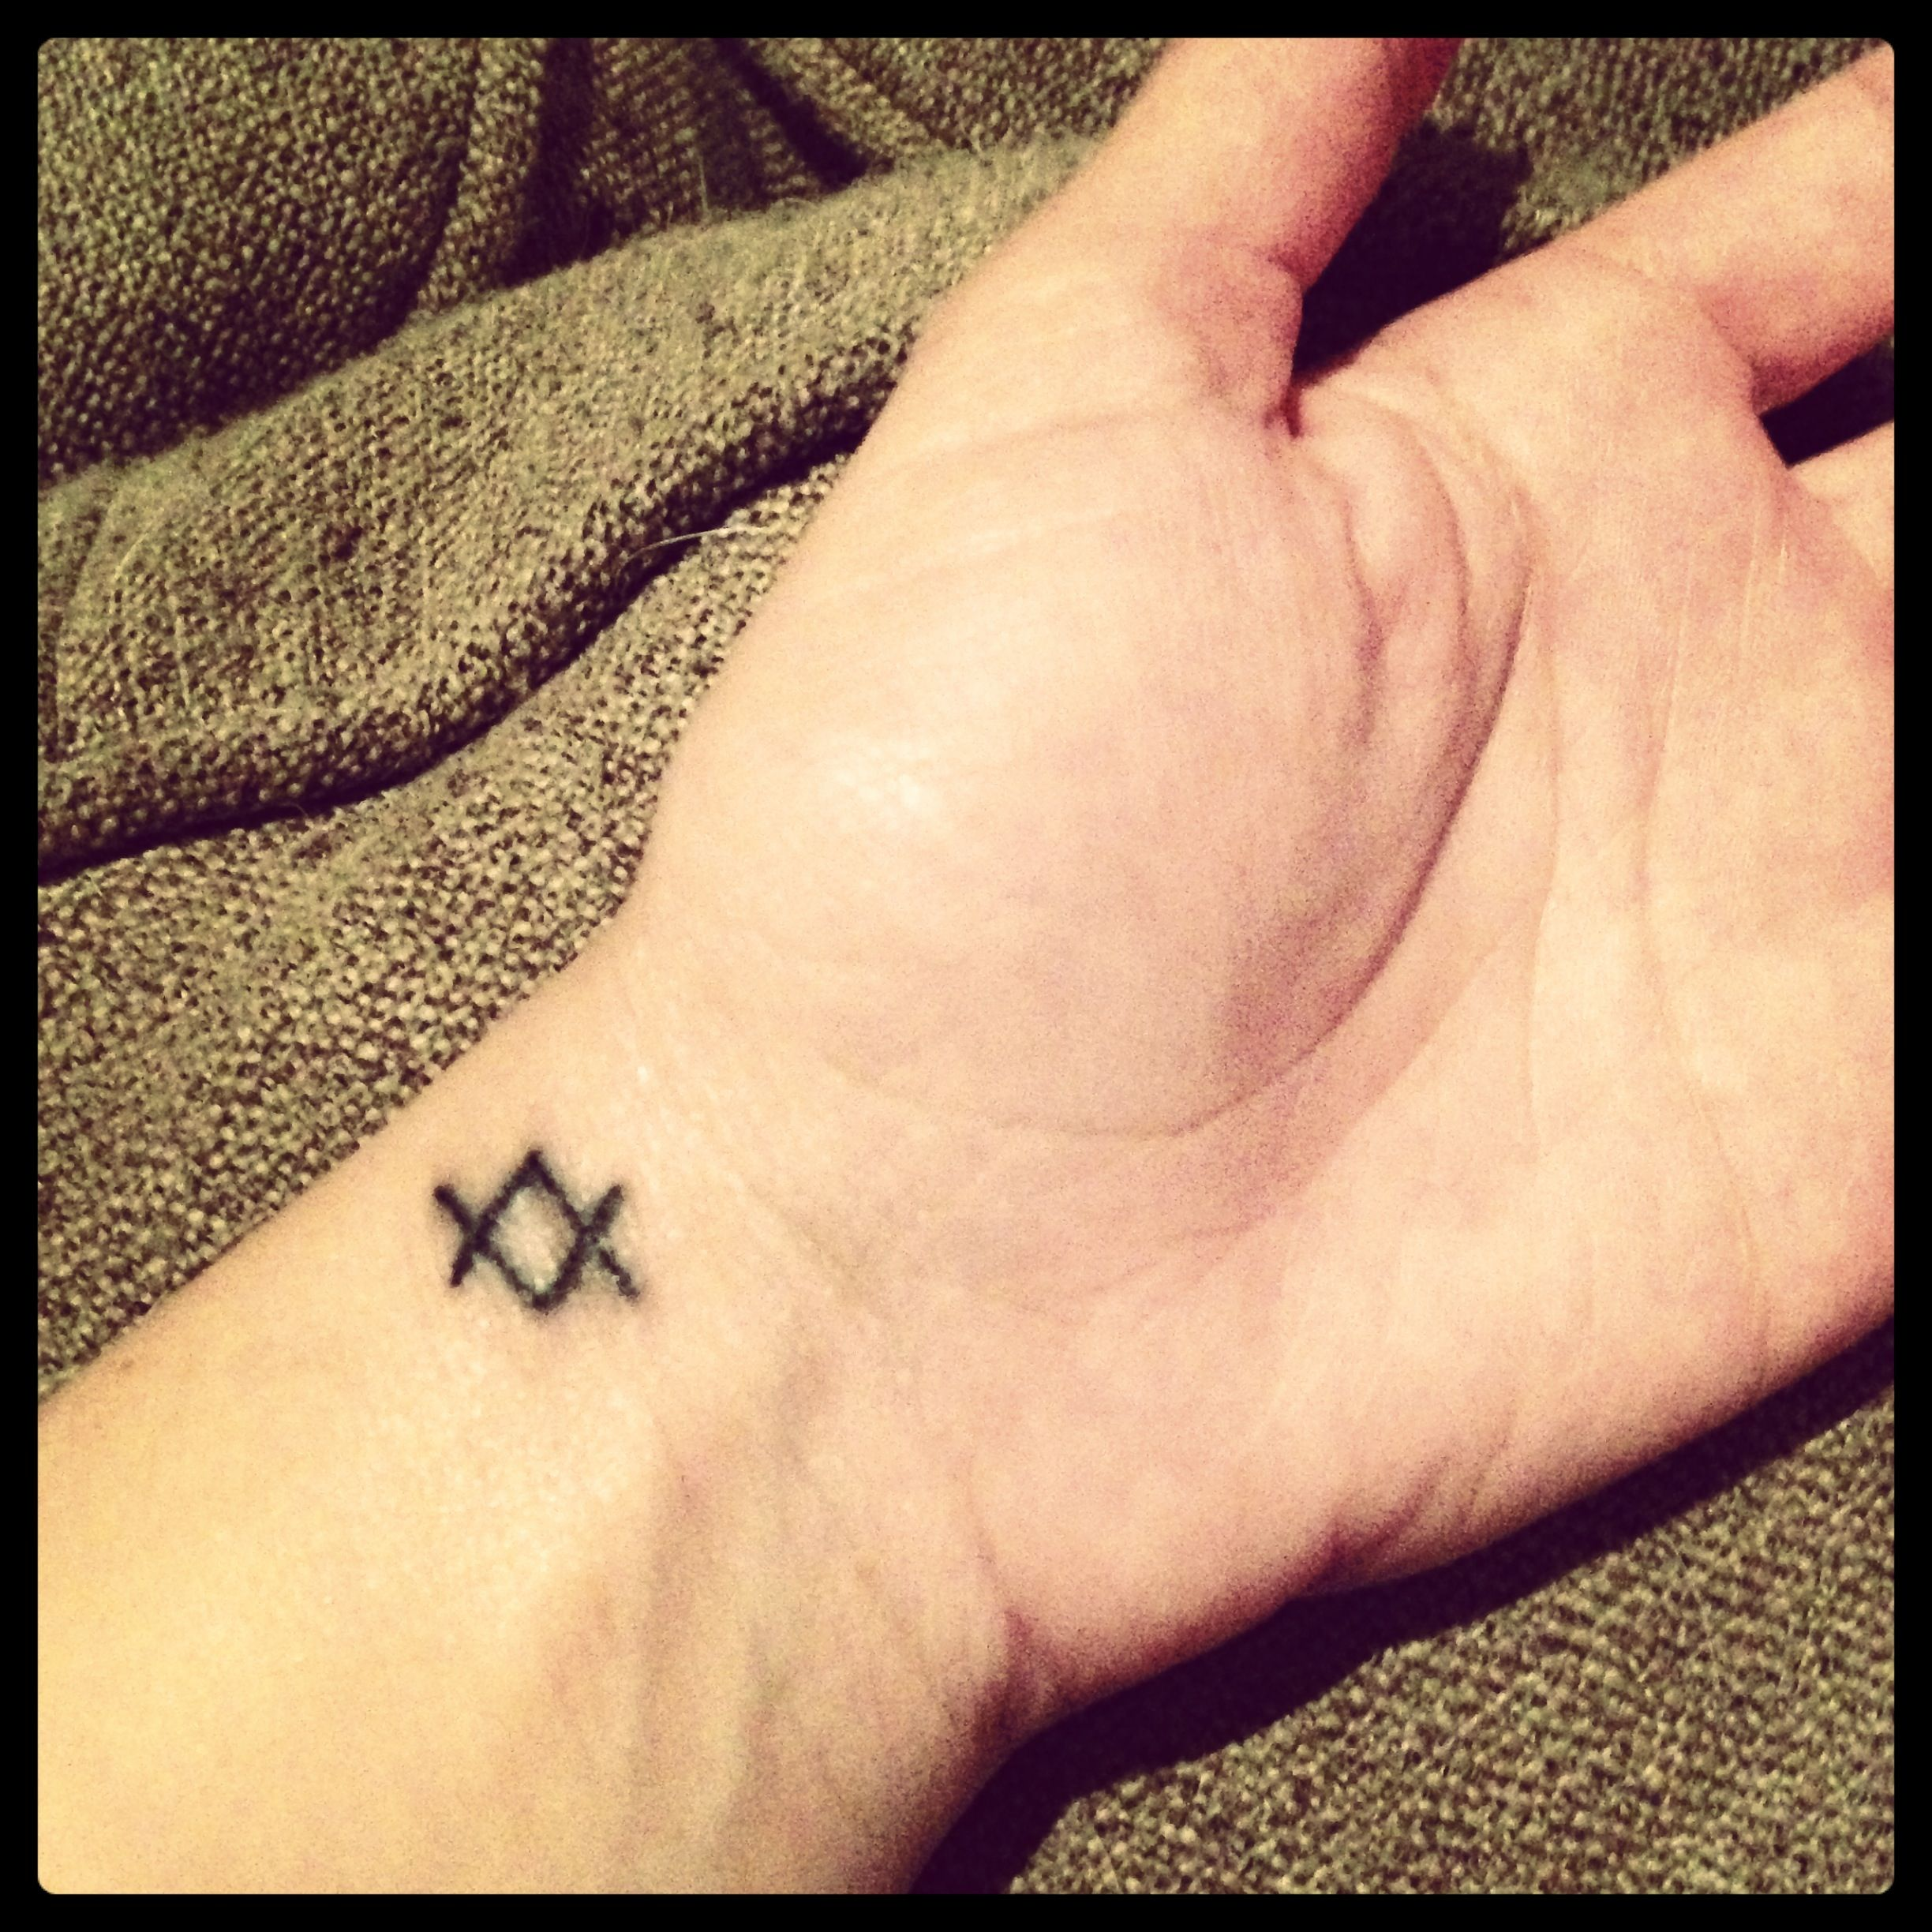 Word tattoo cover up ideas simply love itmy new tat viking symbol uinguzu meaning when